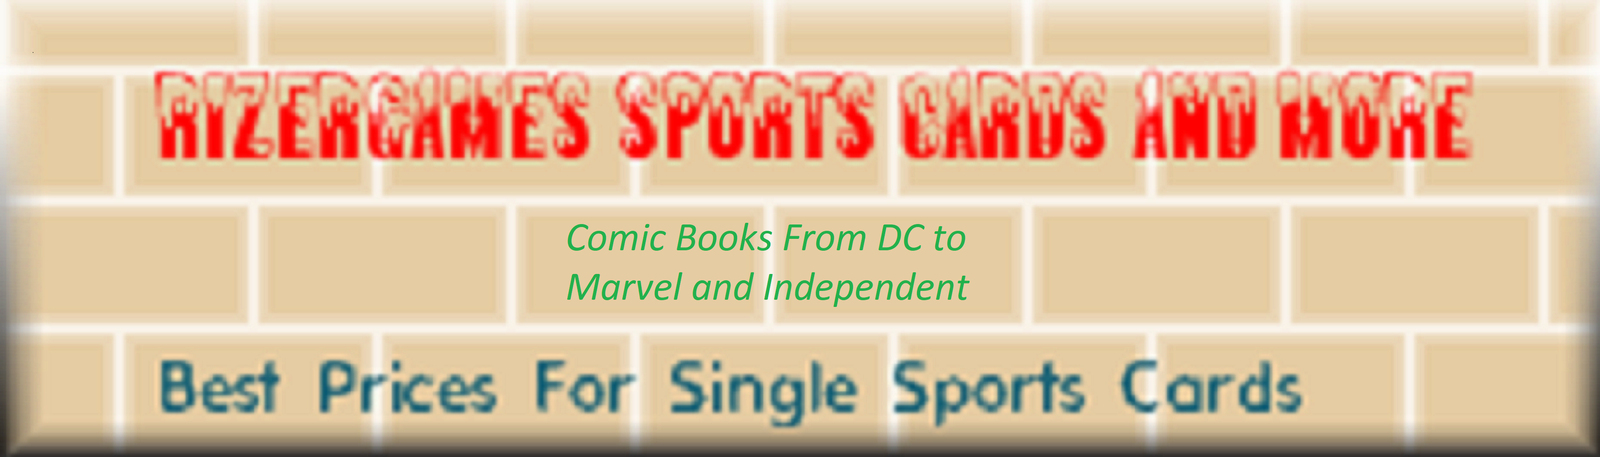 Rizergames Sports Cards and Comics